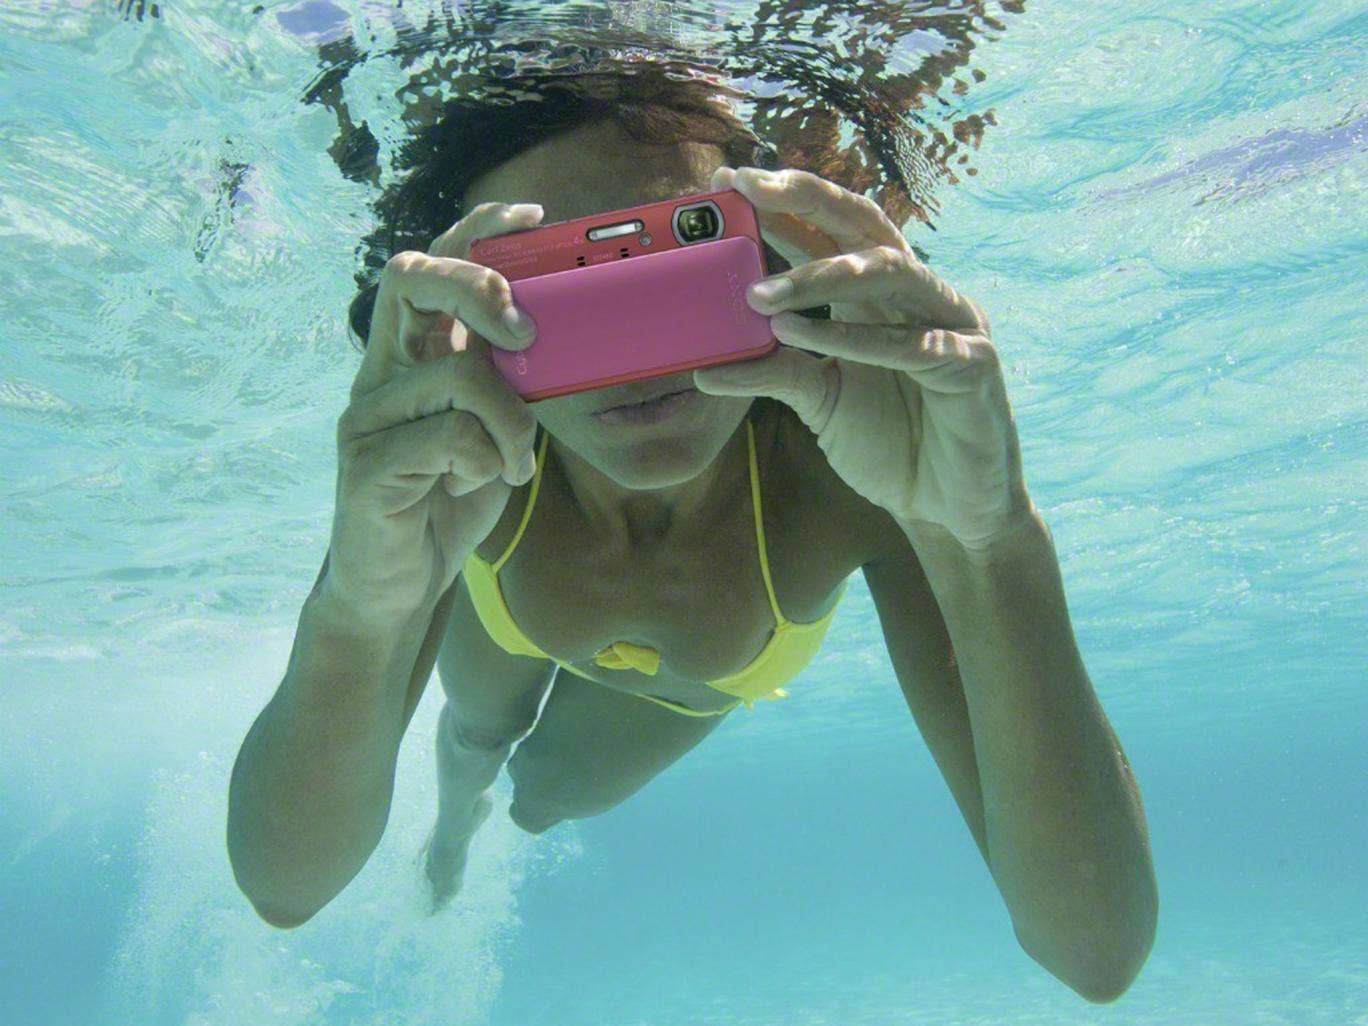 Make a splash: the waterproof Sony DSC-TX20 camera